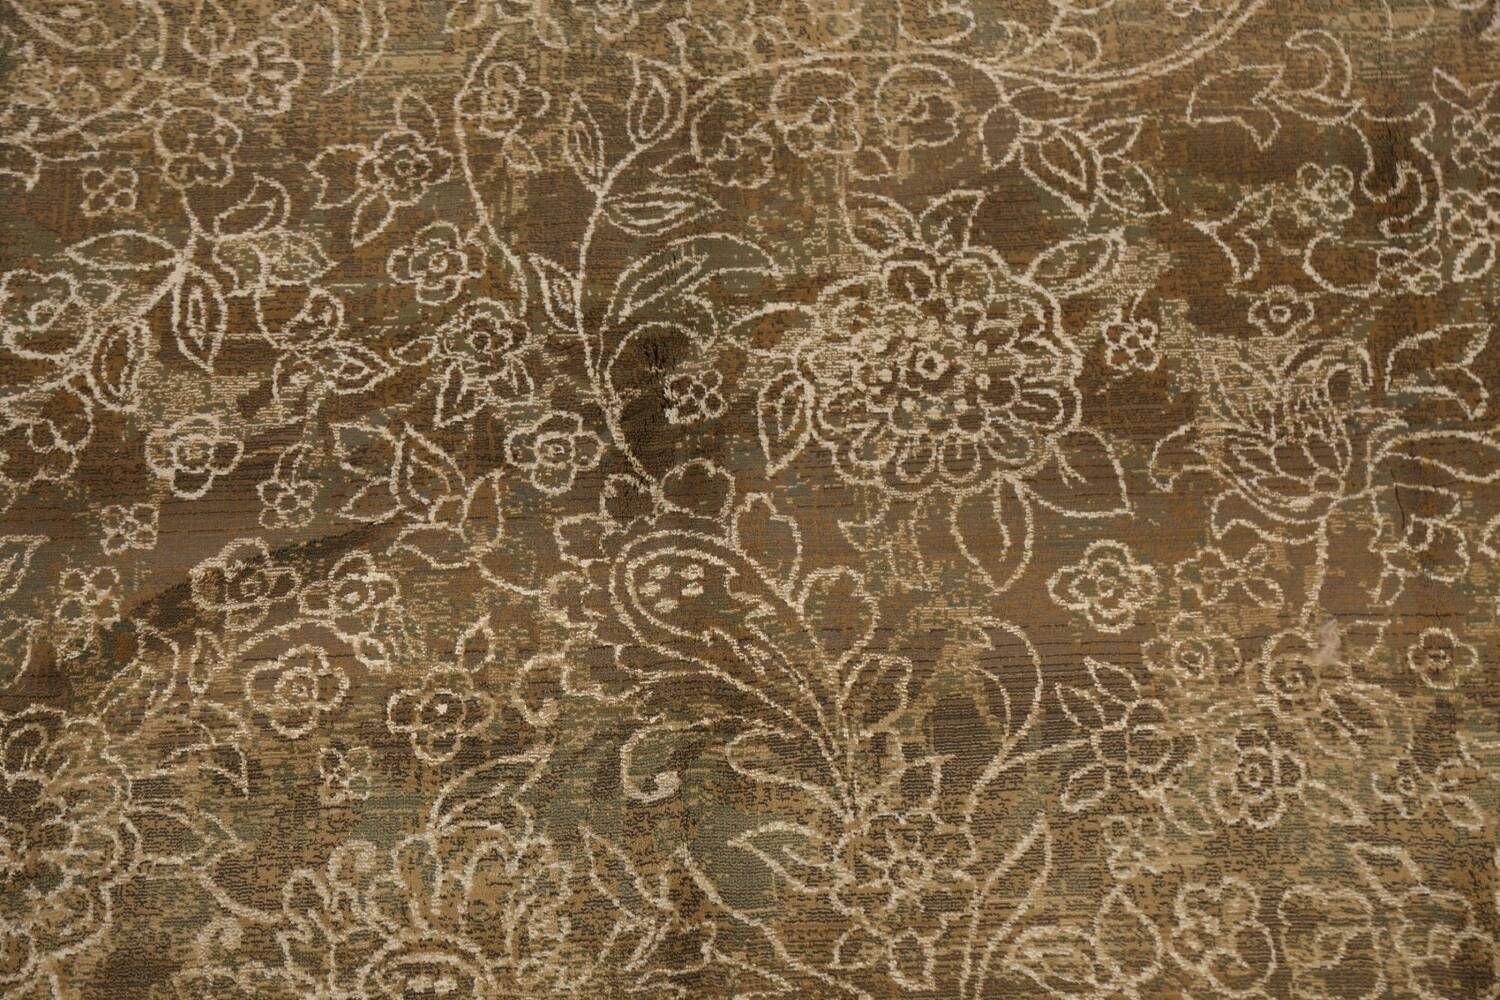 Transitional All-Over Modern Oriental Area Rug 8x11 image 4